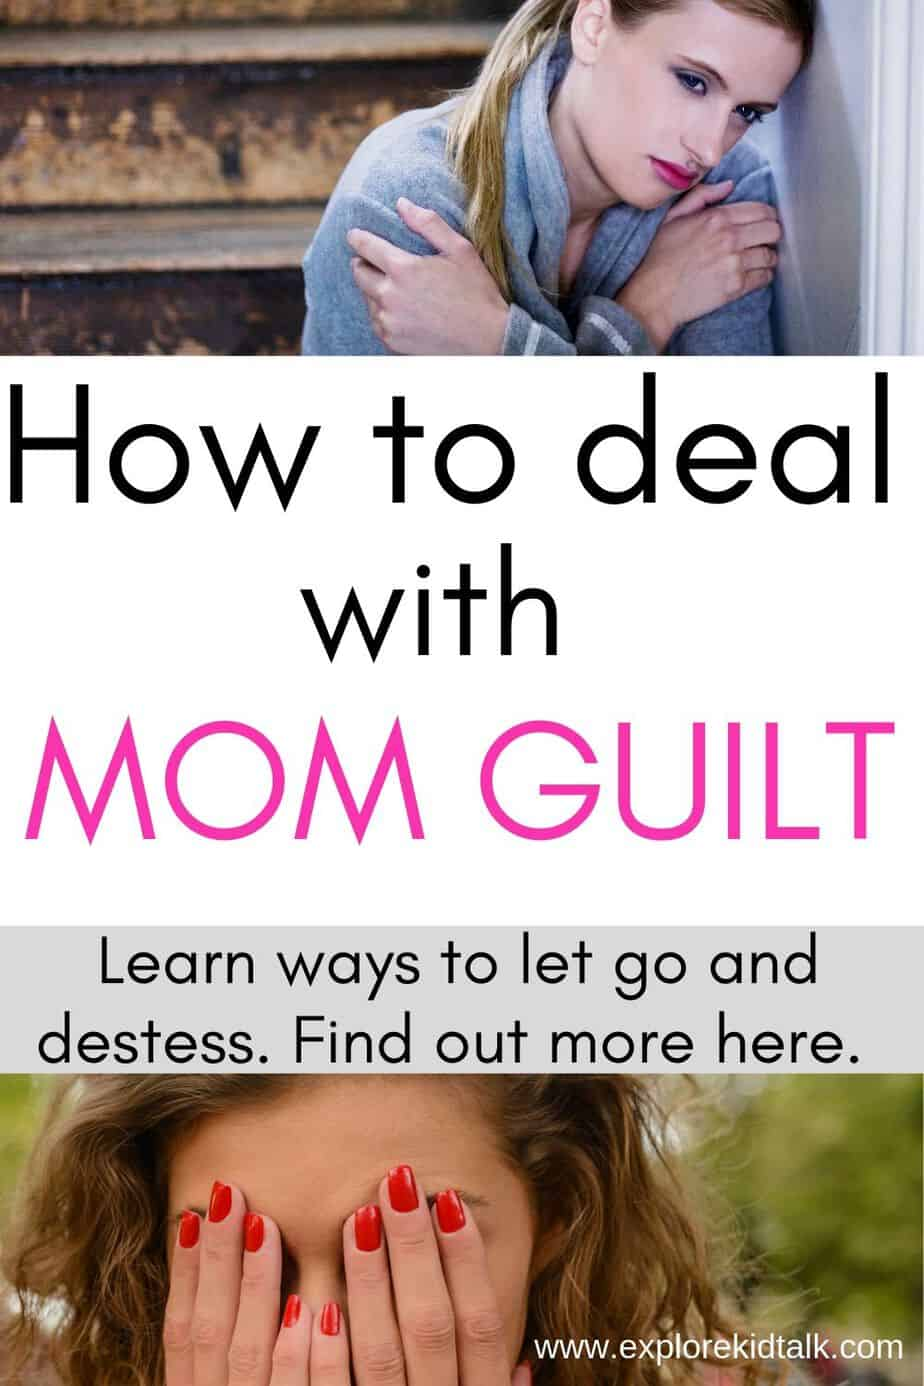 Mom guilt is real. Woman covering her face.